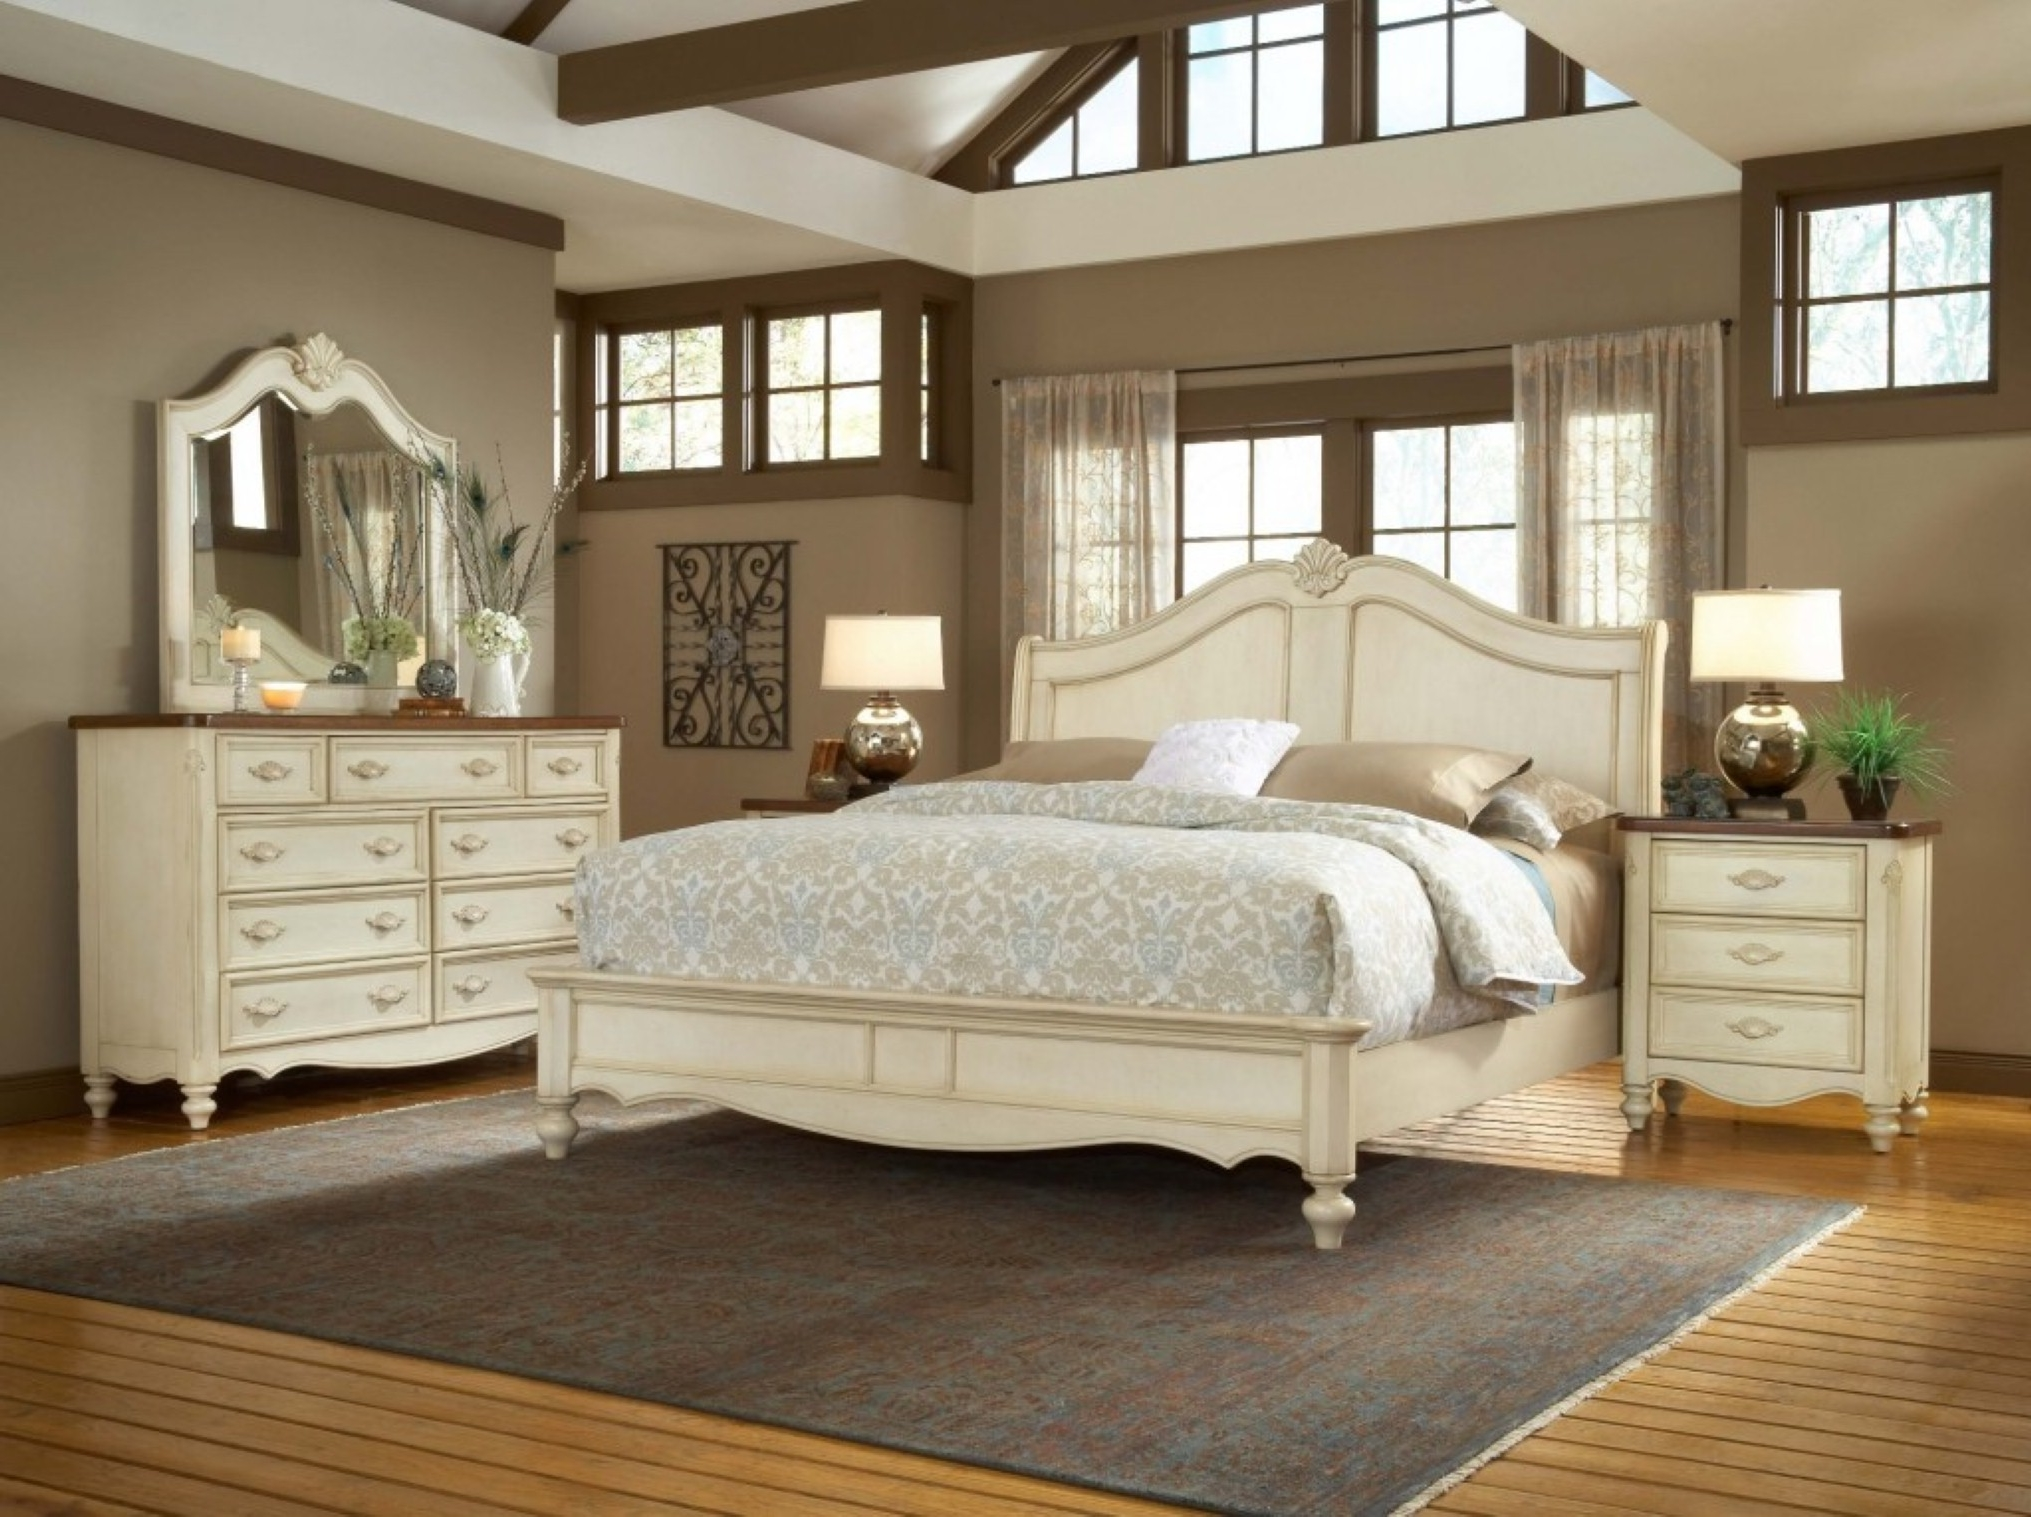 neat-inspirational-cream-furniture-as-cream-painted-bedroom-furniture-with-added-design-bedroom-and-exquisite-to-various-settings-layout-of-the-room-bedroom-exquisite